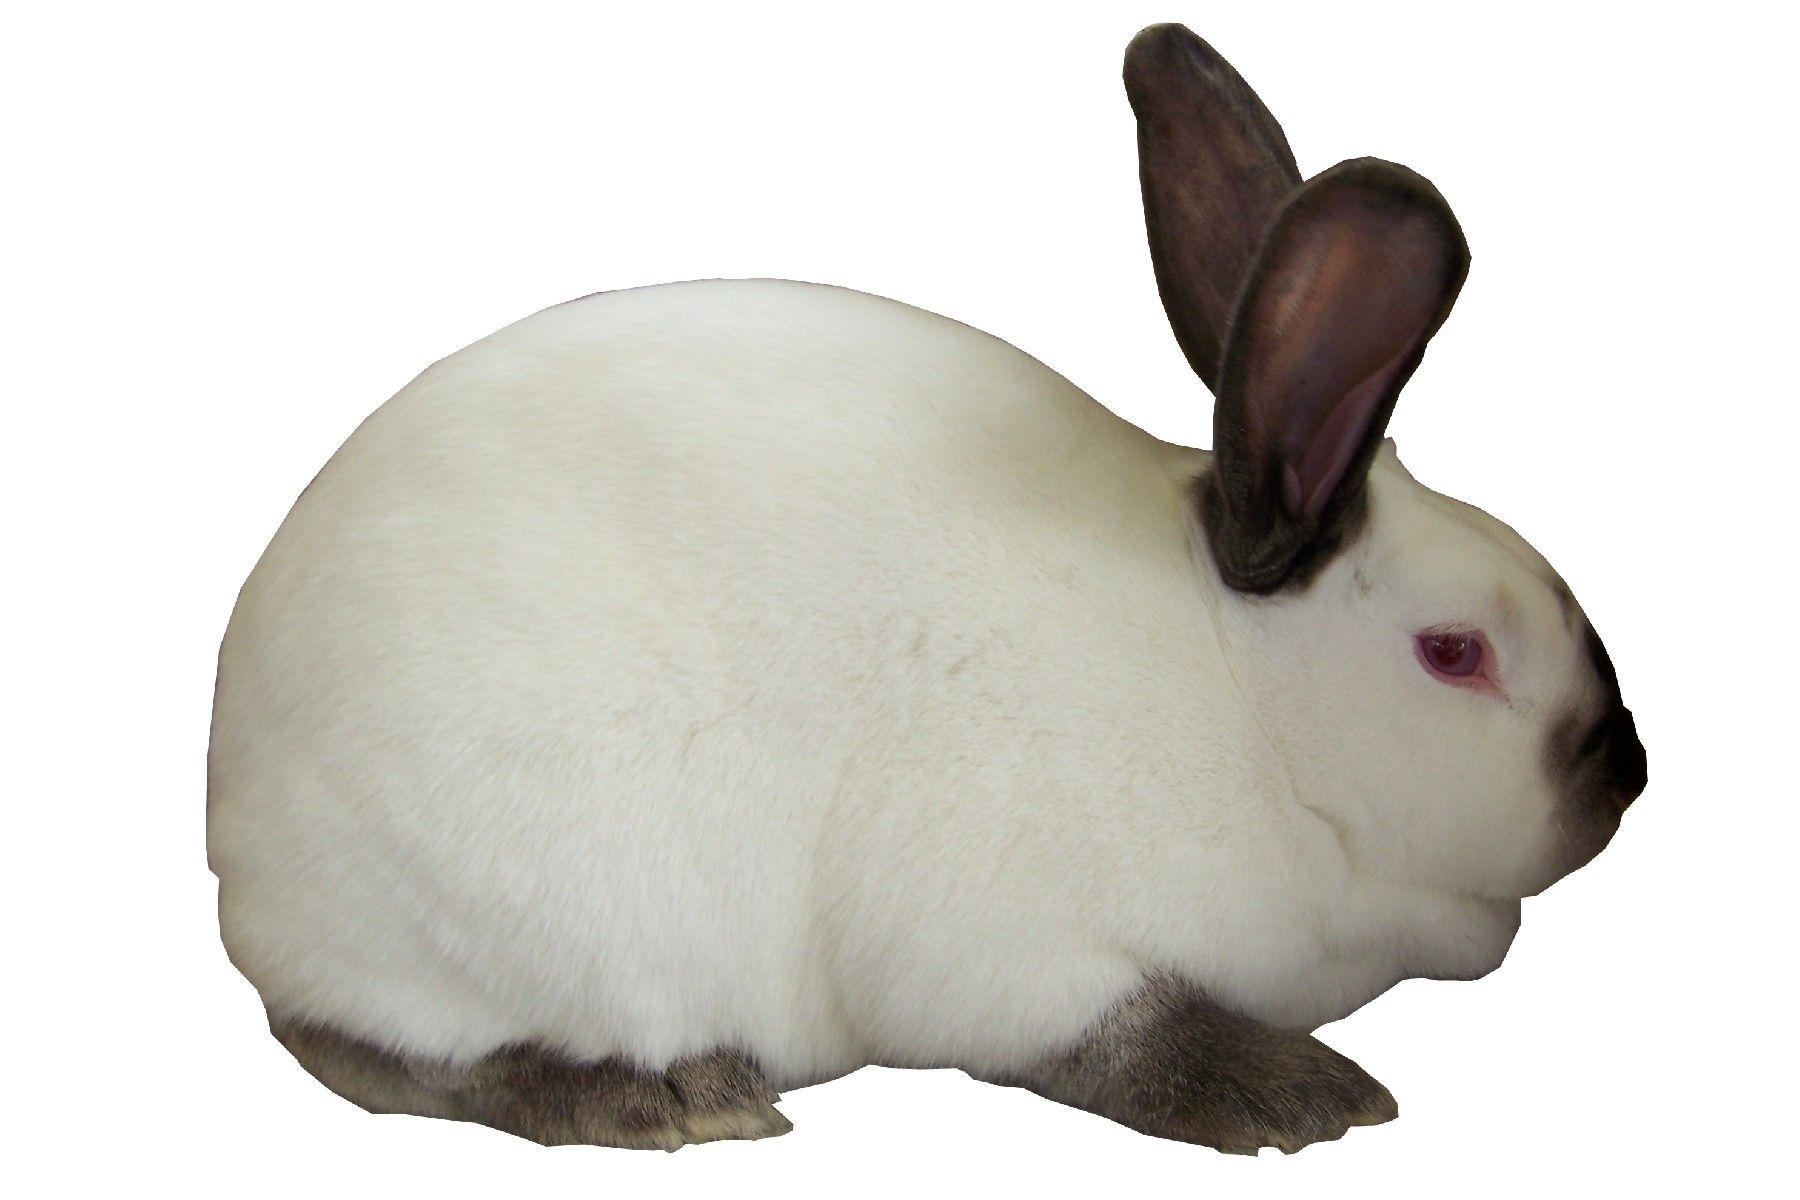 Rabbits of the Californian breed: breeding, description and features of the contents